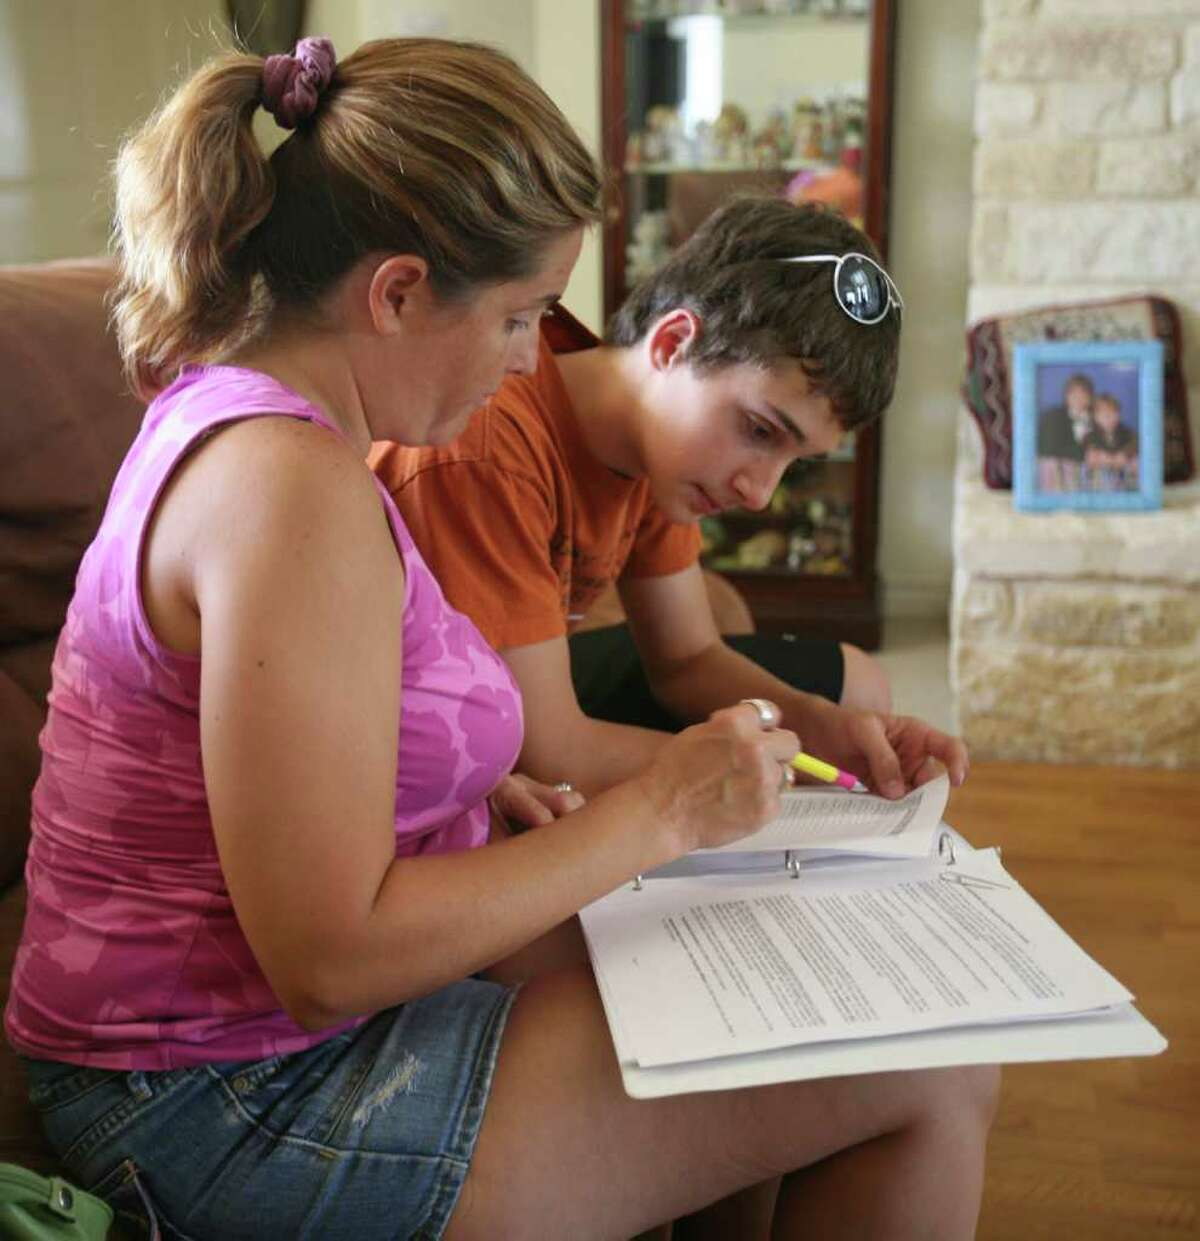 Alexander Regets,15, is shown going over driving instructions after he finished driving practice with his mother. He recently received his learner's permit at a tme where Summer is considered the a deadly time for teenager drivers. . Monday, June 6, 2011. OMAR PEREZ/operez@express-news.net